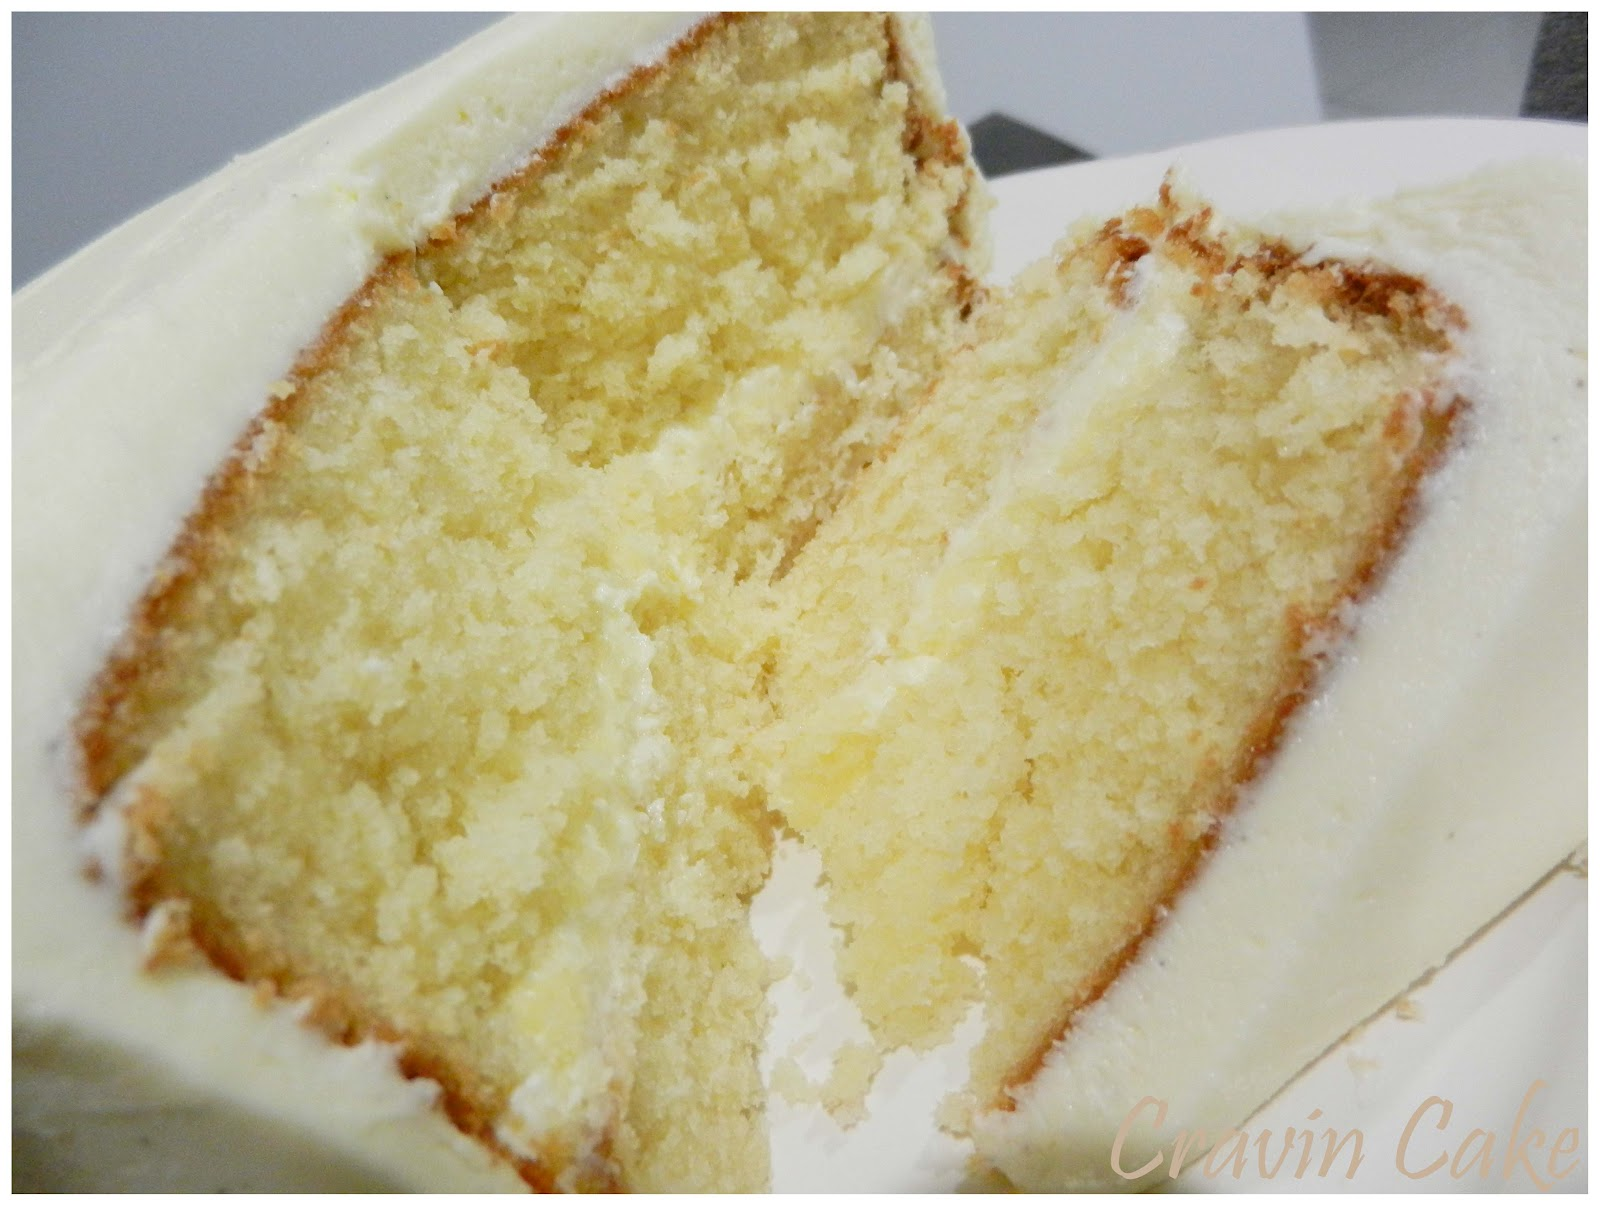 Cravin Cake: Moist and Delicious Vanilla Layer Cake